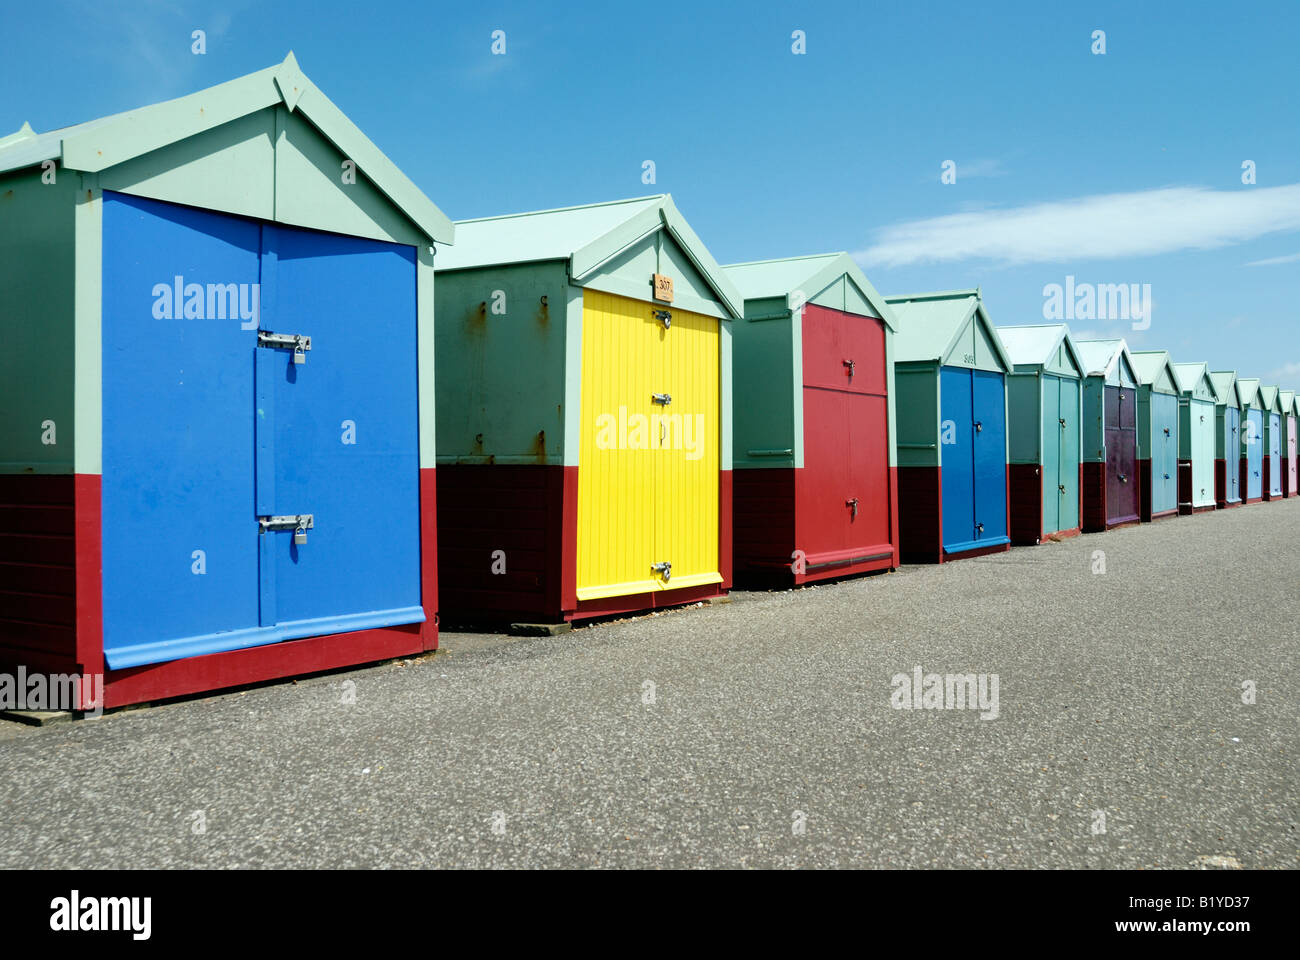 A row of colourful beachhuts on the seafront in Hove Stock Photo